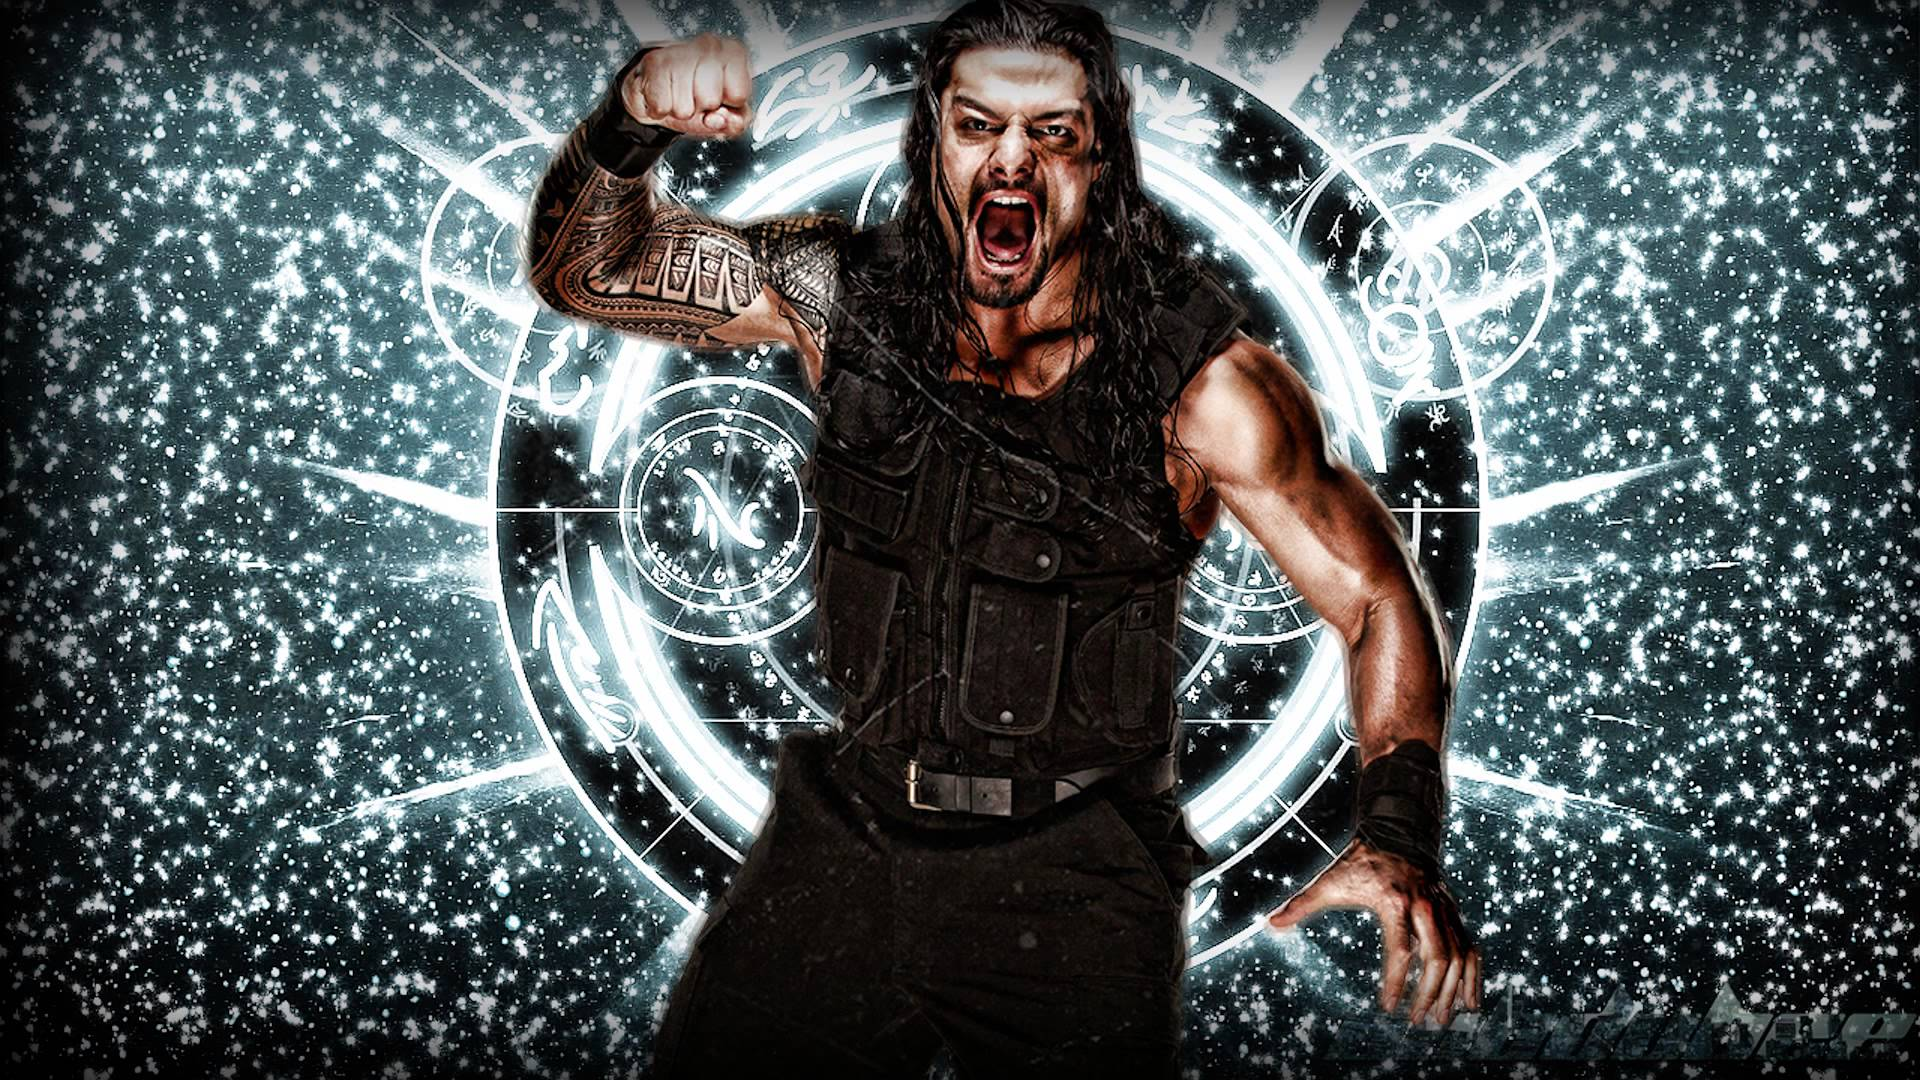 Roman Reigns Wallpapers HD 2014